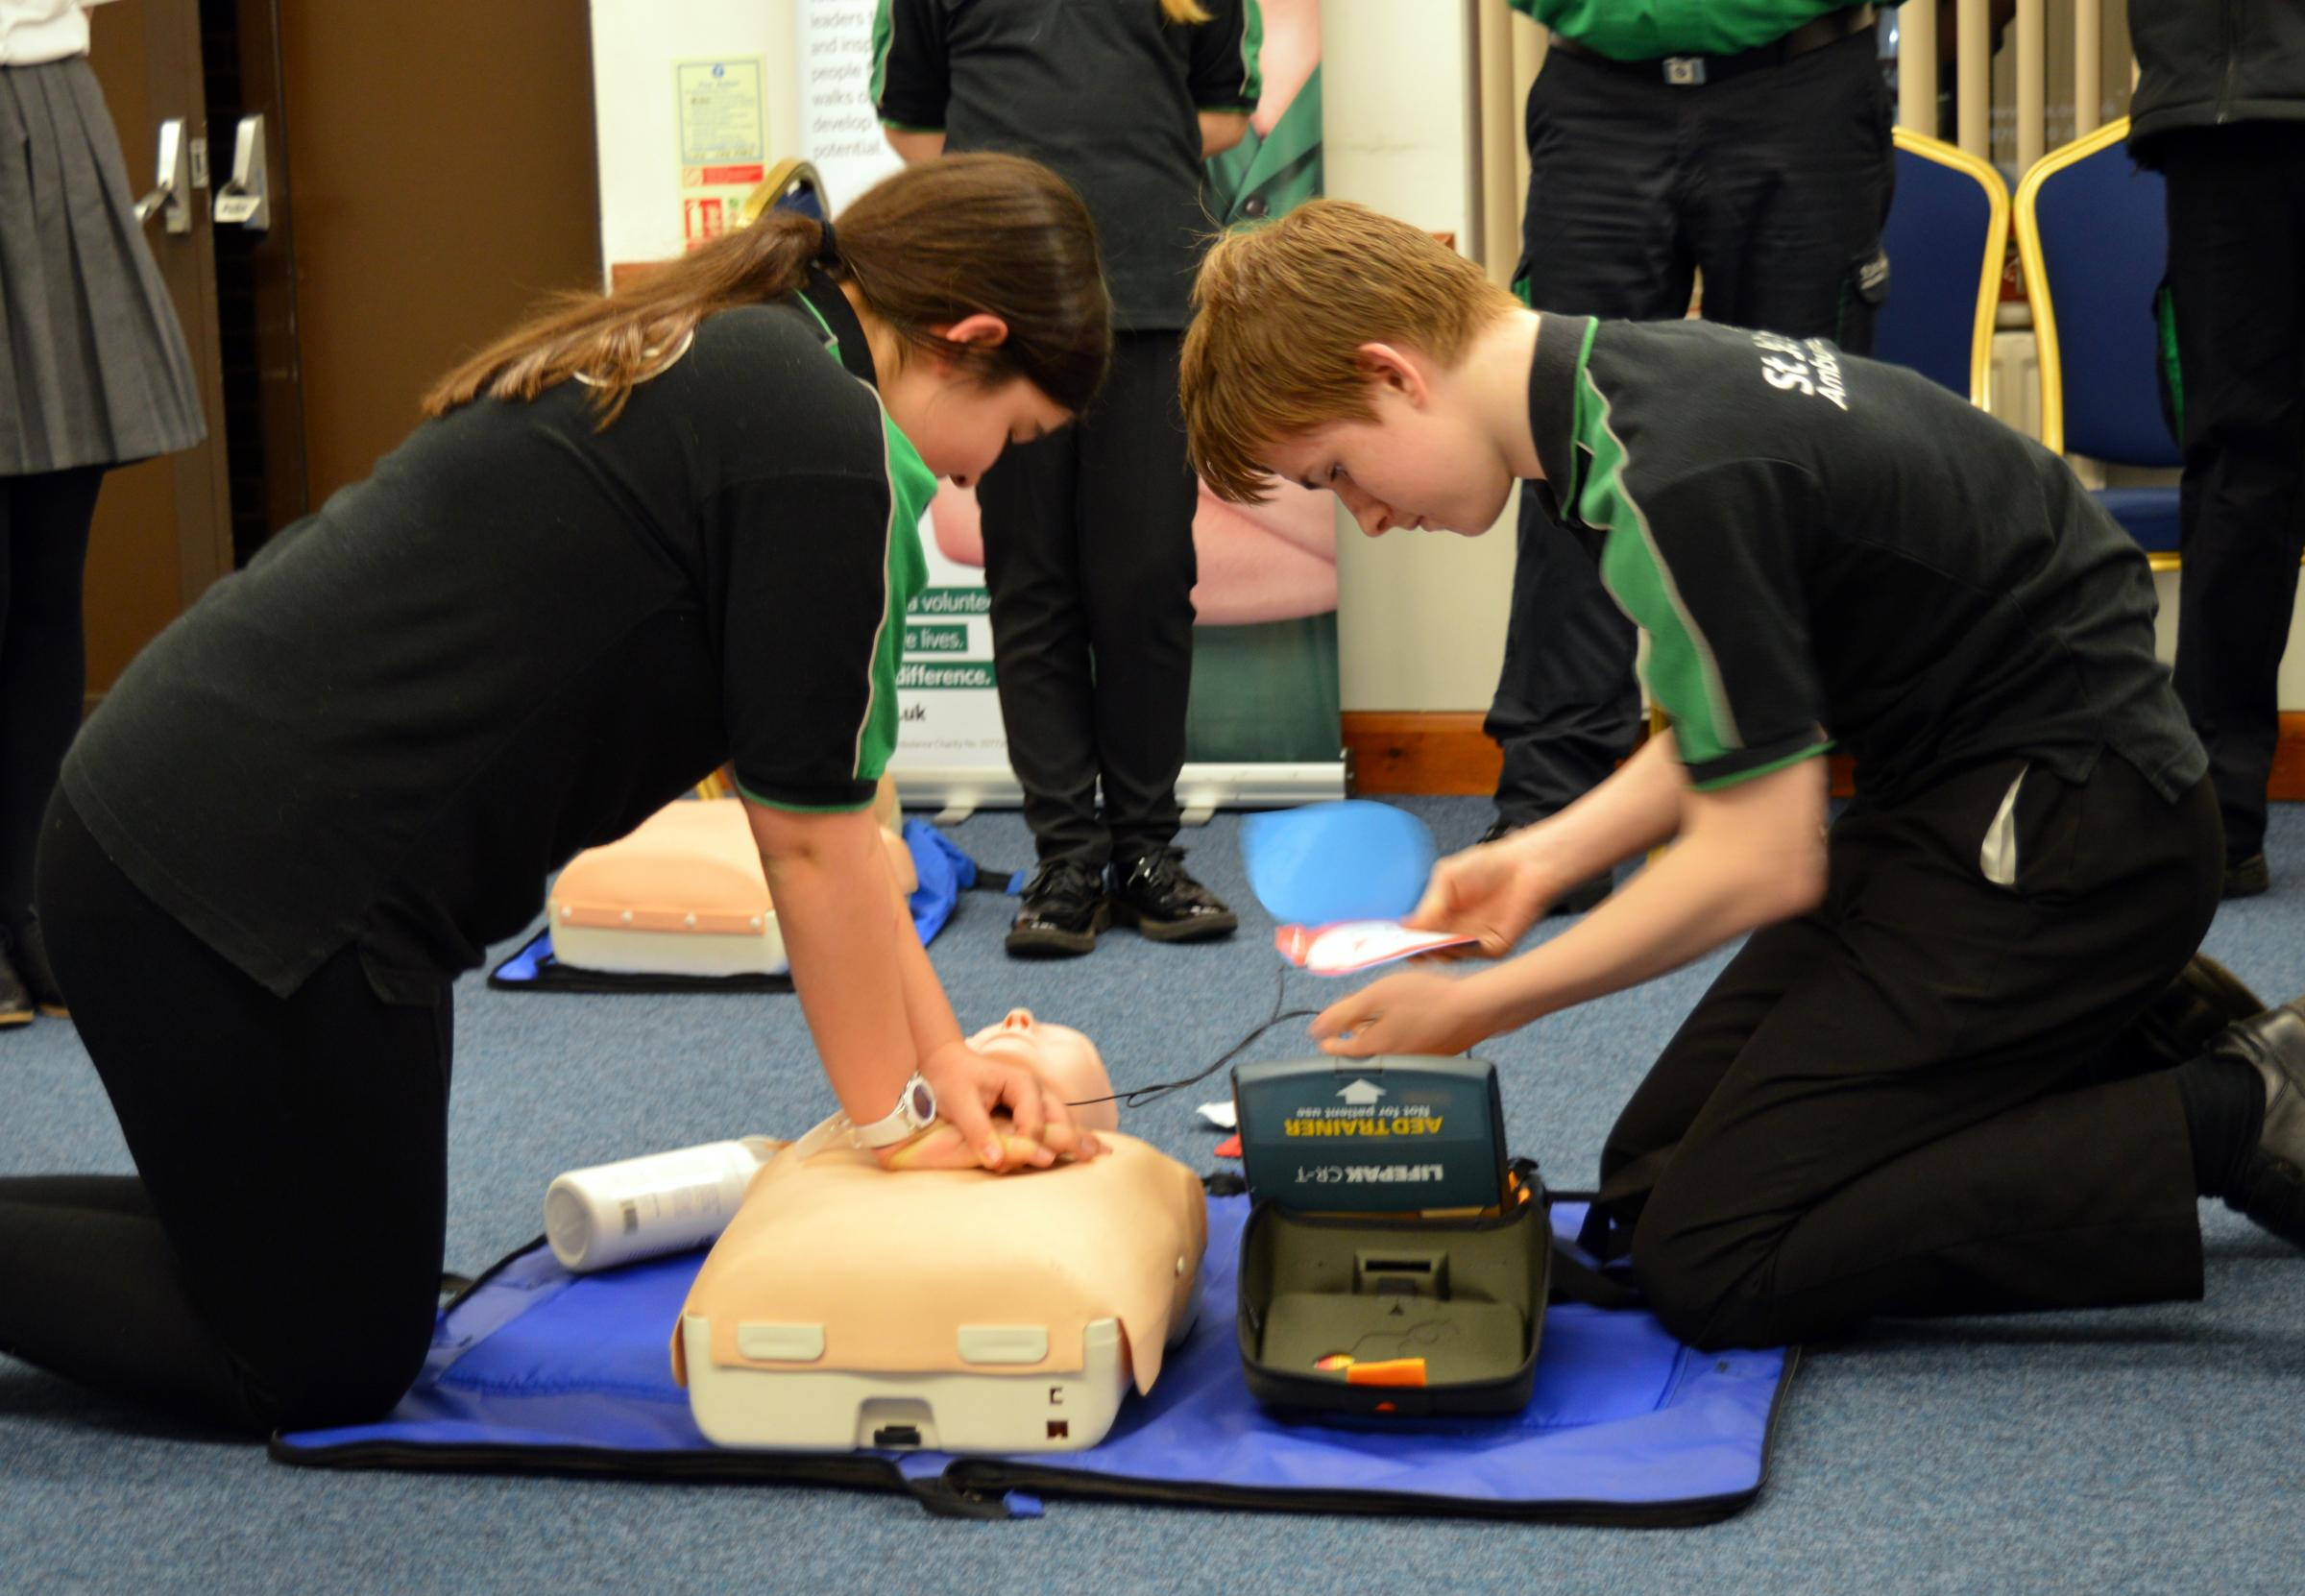 Learning to use a defibrillator